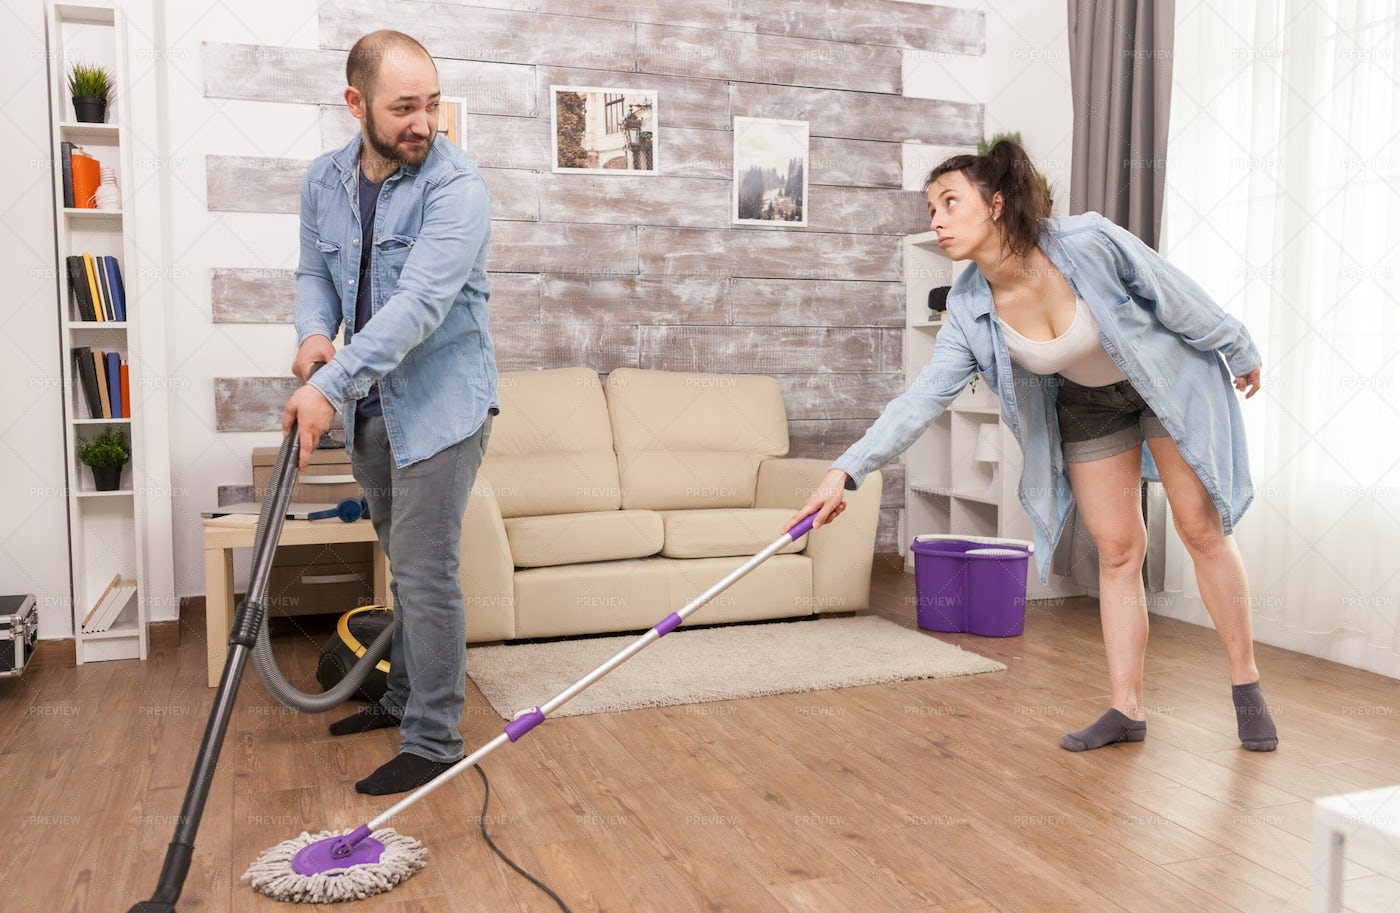 Cleaning Together: Stock Photos